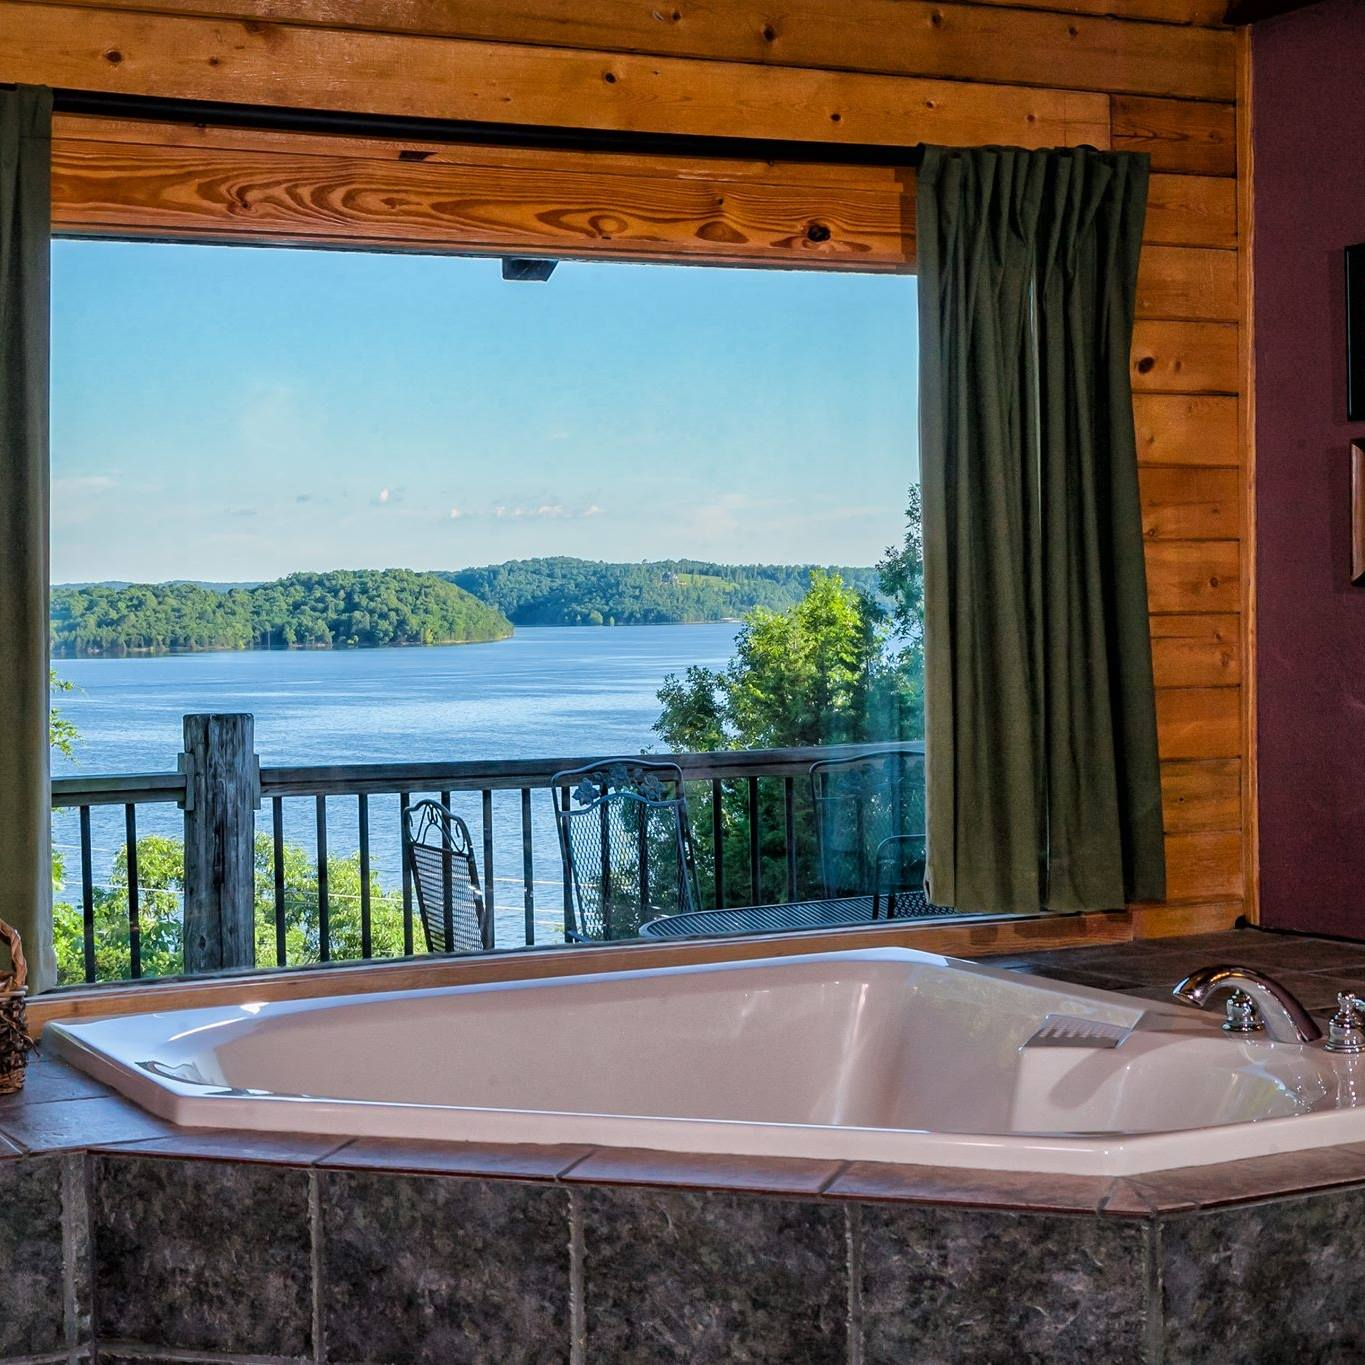 Whispering Hills Cabins Rentals on Beaver Lake View from Jacuzzi Tub